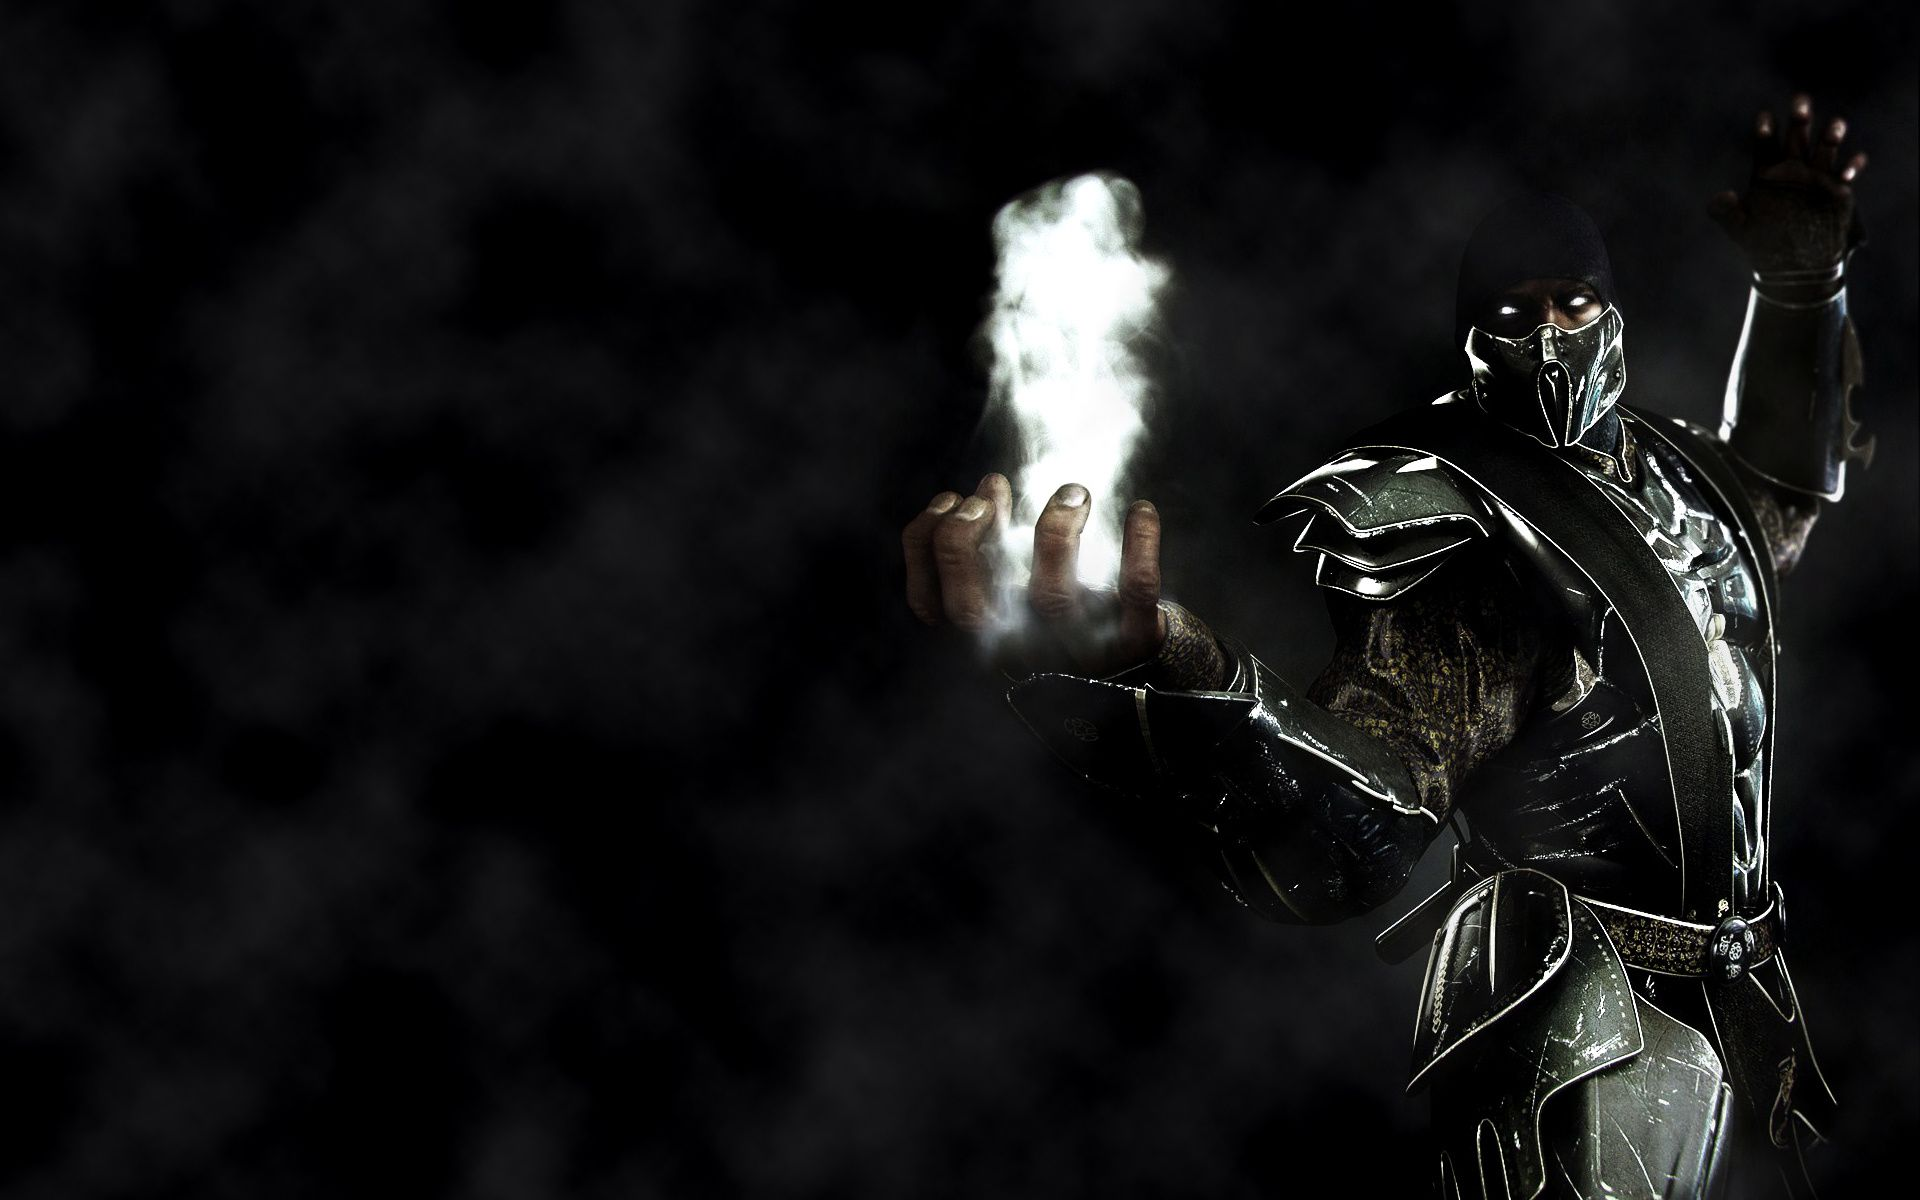 noob saibot mortal kombat 11 wallpaper 4k